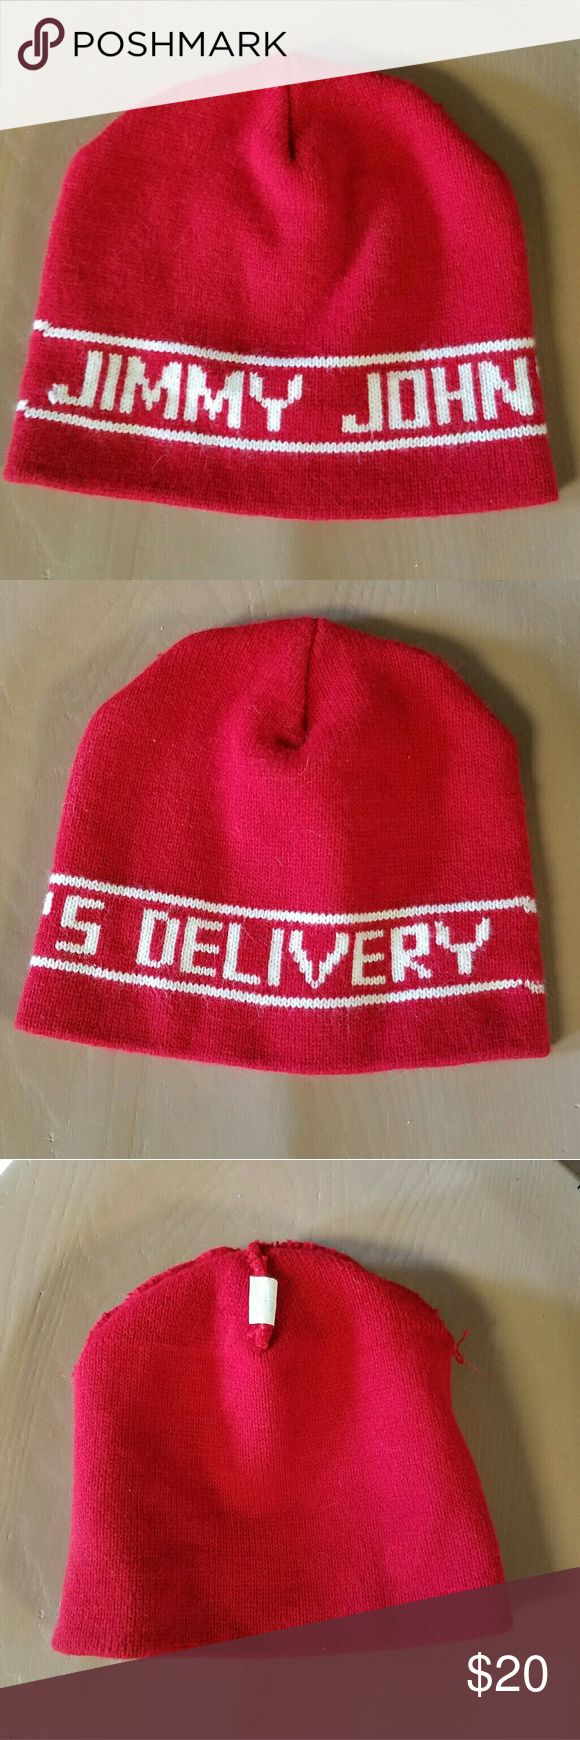 Red Jimmy John's Delivery Beanie Hat One Size This red Beanie Hat says Jimmy John's Delivery around middle.  It's in excellent condition with no rips, stains or repairs.  Very minimal wear.  Perfect for drivers or just because.  Hand wash cold.  One size fits most.  Made in the USA.  (bin4) WK Made in USA  Accessories Hats